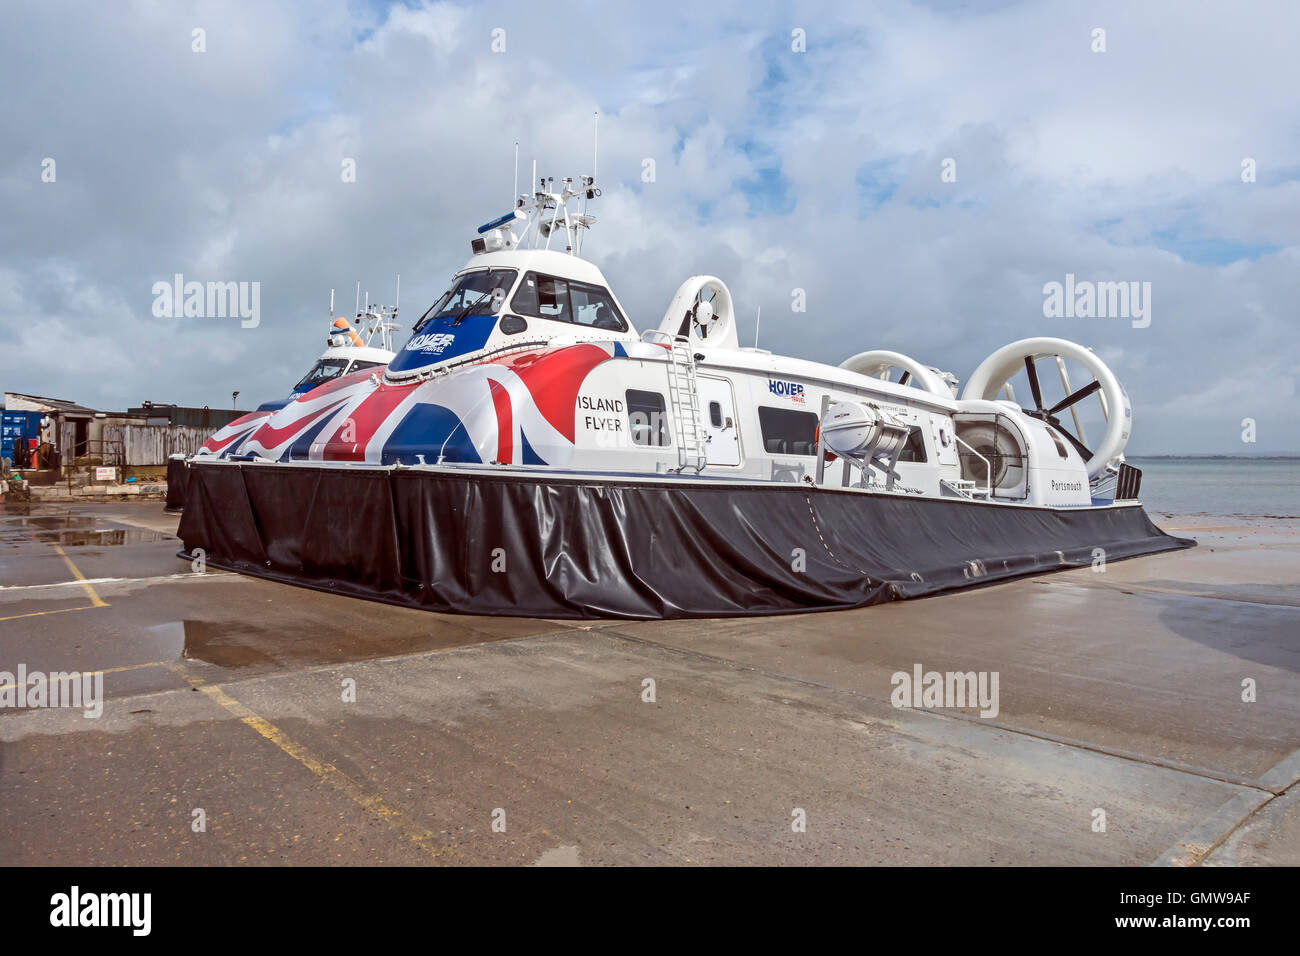 New hovercraft Island Flyer at Ryde Hoverport on Isle of Wight England UK - Stock Image